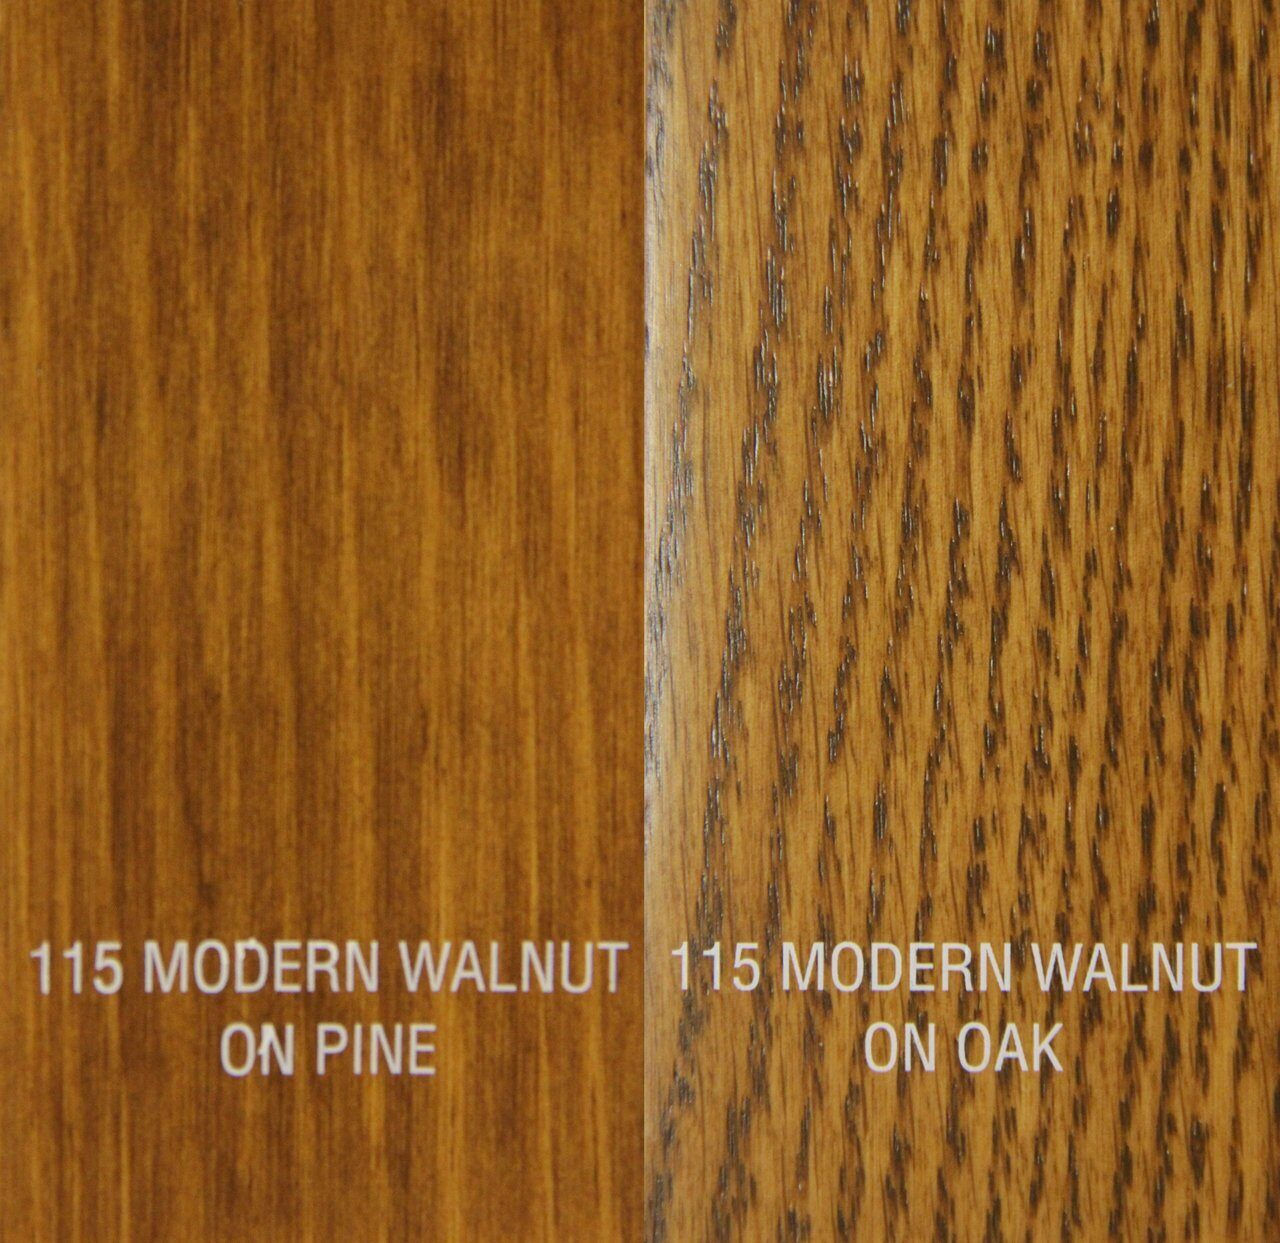 Zar Wood Stain Modern Walnut New Purse And Wood Zenonimages